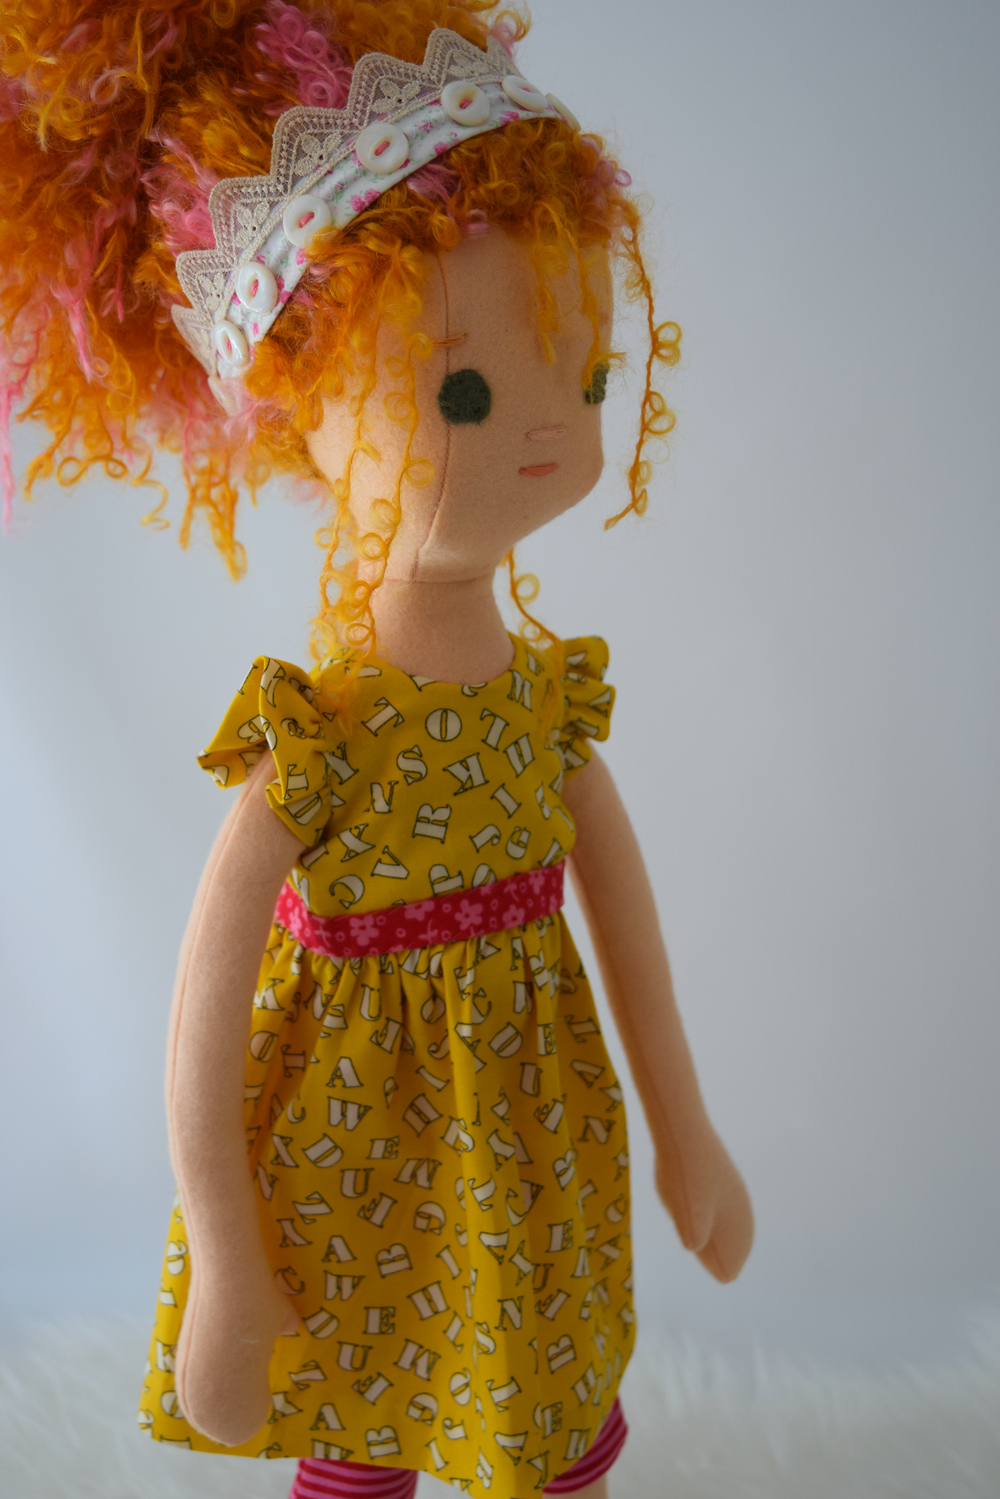 Fancy Nancy the Rag Doll